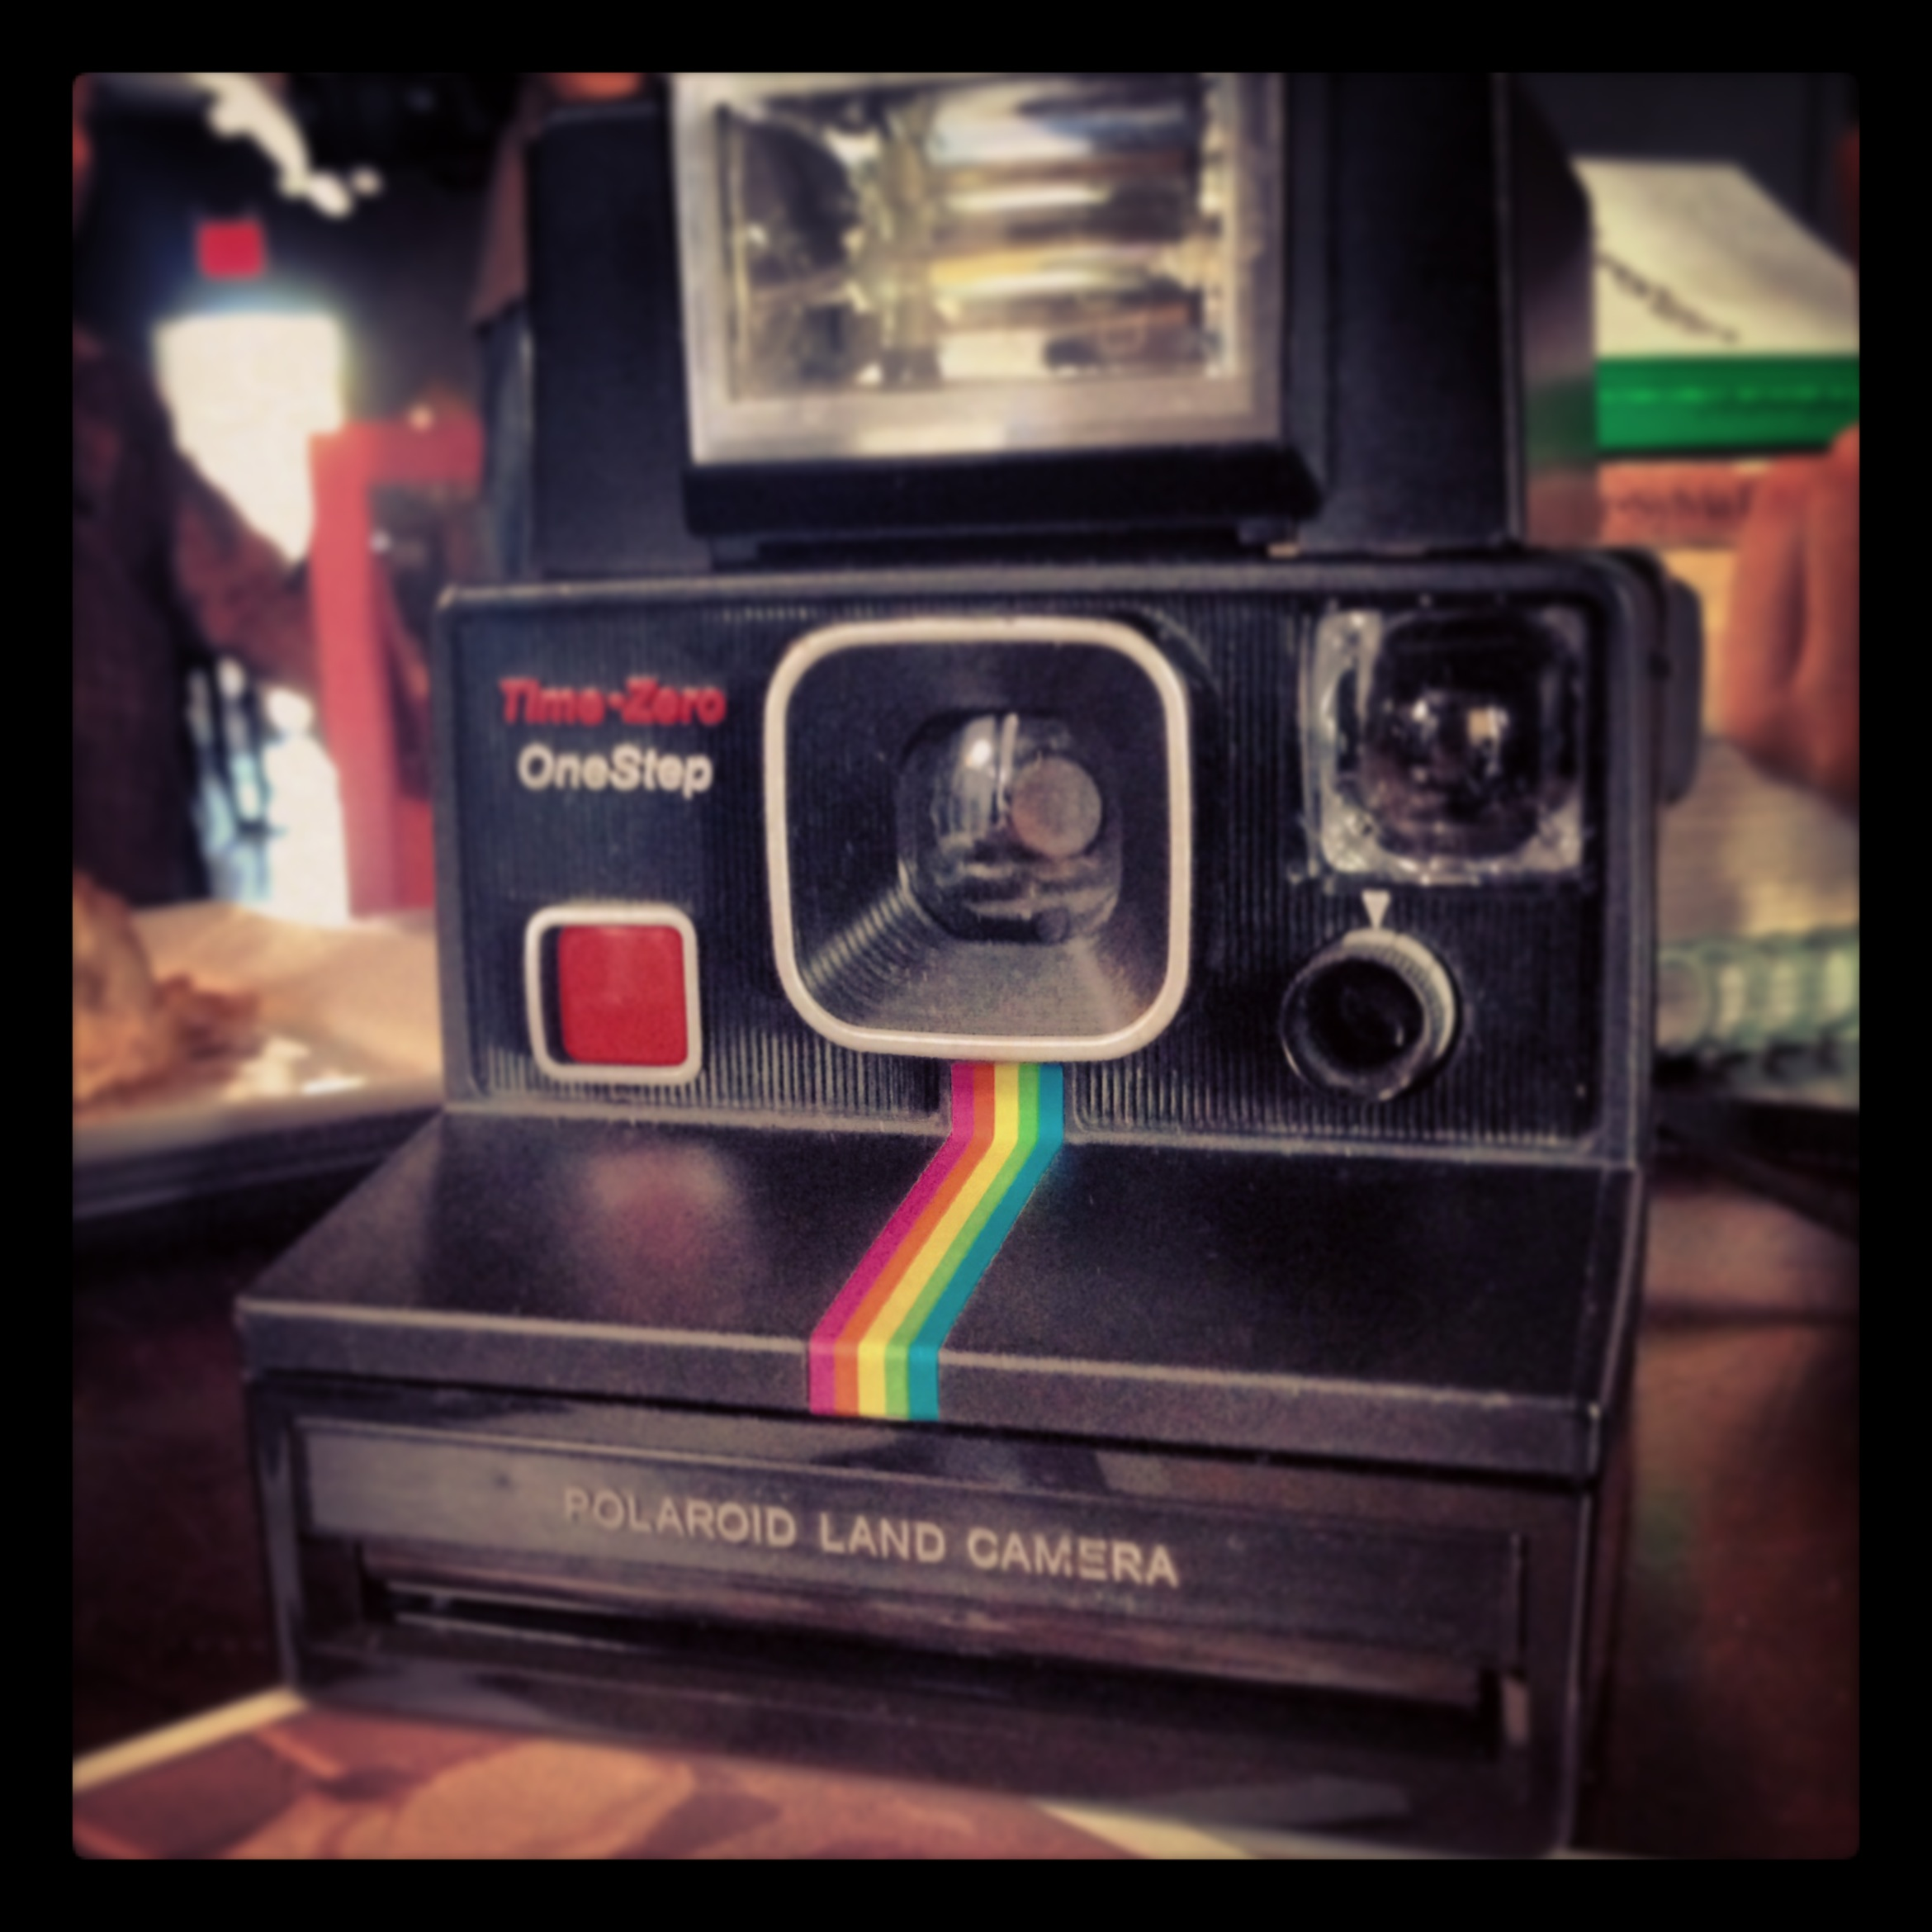 Ish's Polaroid Camera